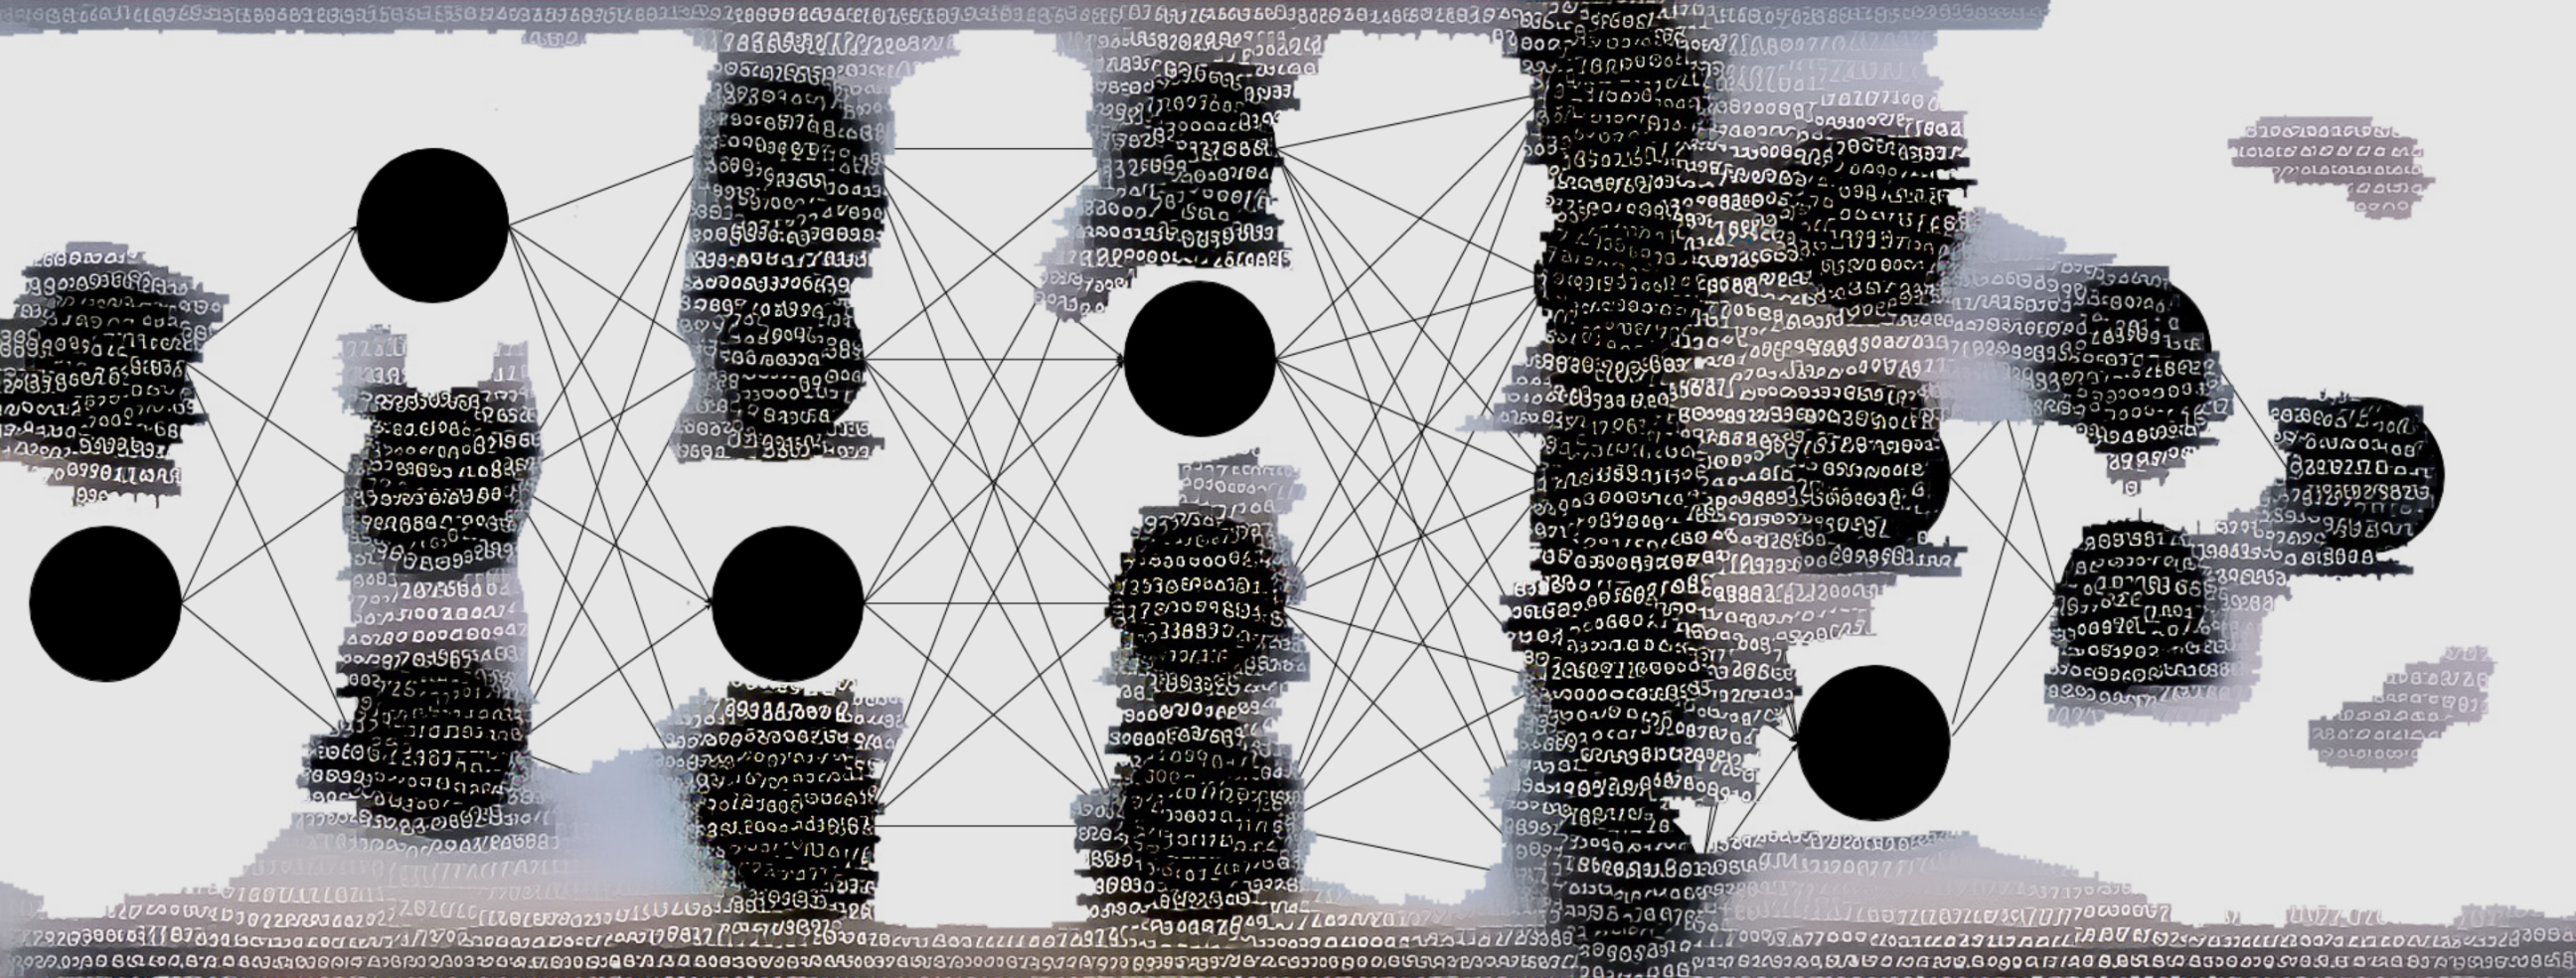 visualization of the neural network